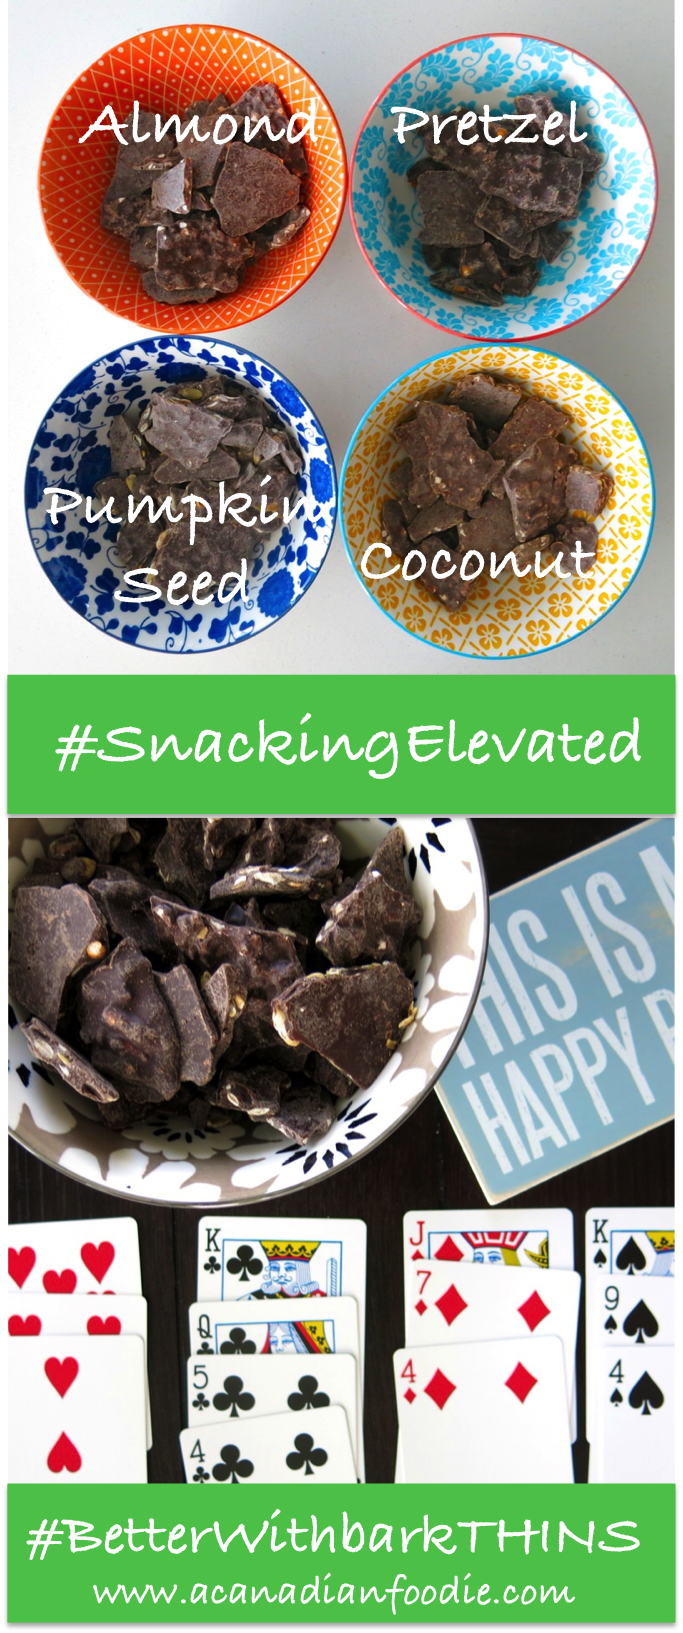 barkTHINS®: Delicious Non-GMO Fair Trade Dark Chocolate Bites; Yes You Can Snack on All Natural Dark Chocolate! #betterwithbarkTHINS #snackingelevated www.acanadianfoodie.com Enjoy chocolate snacks while committing to all natural real food.